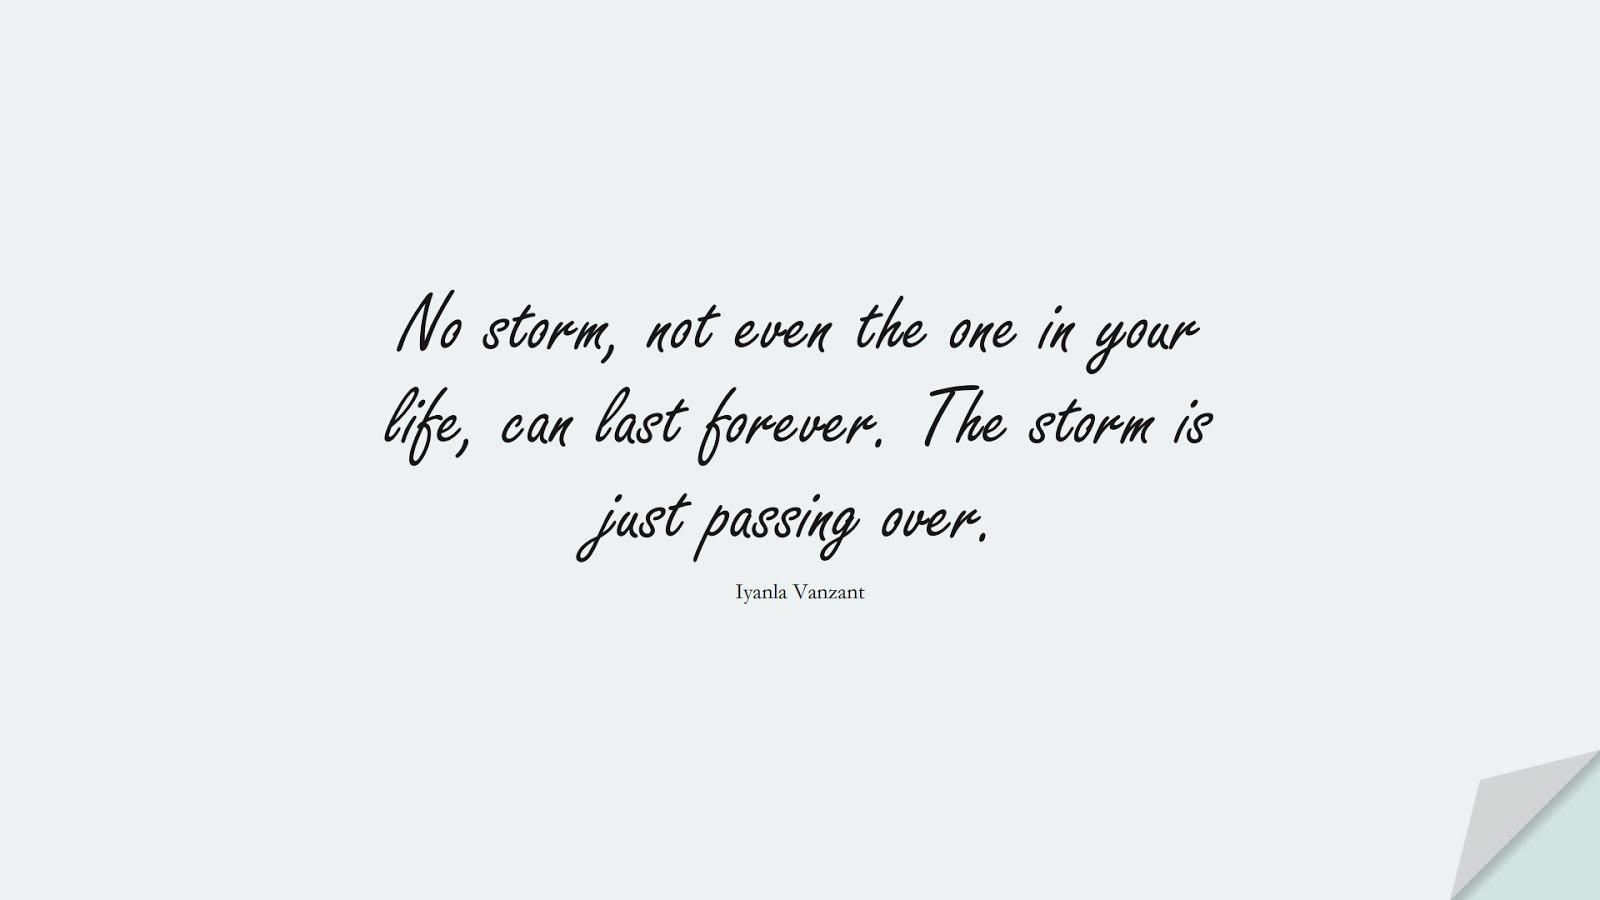 No storm, not even the one in your life, can last forever. The storm is just passing over. (Iyanla Vanzant);  #DepressionQuotes